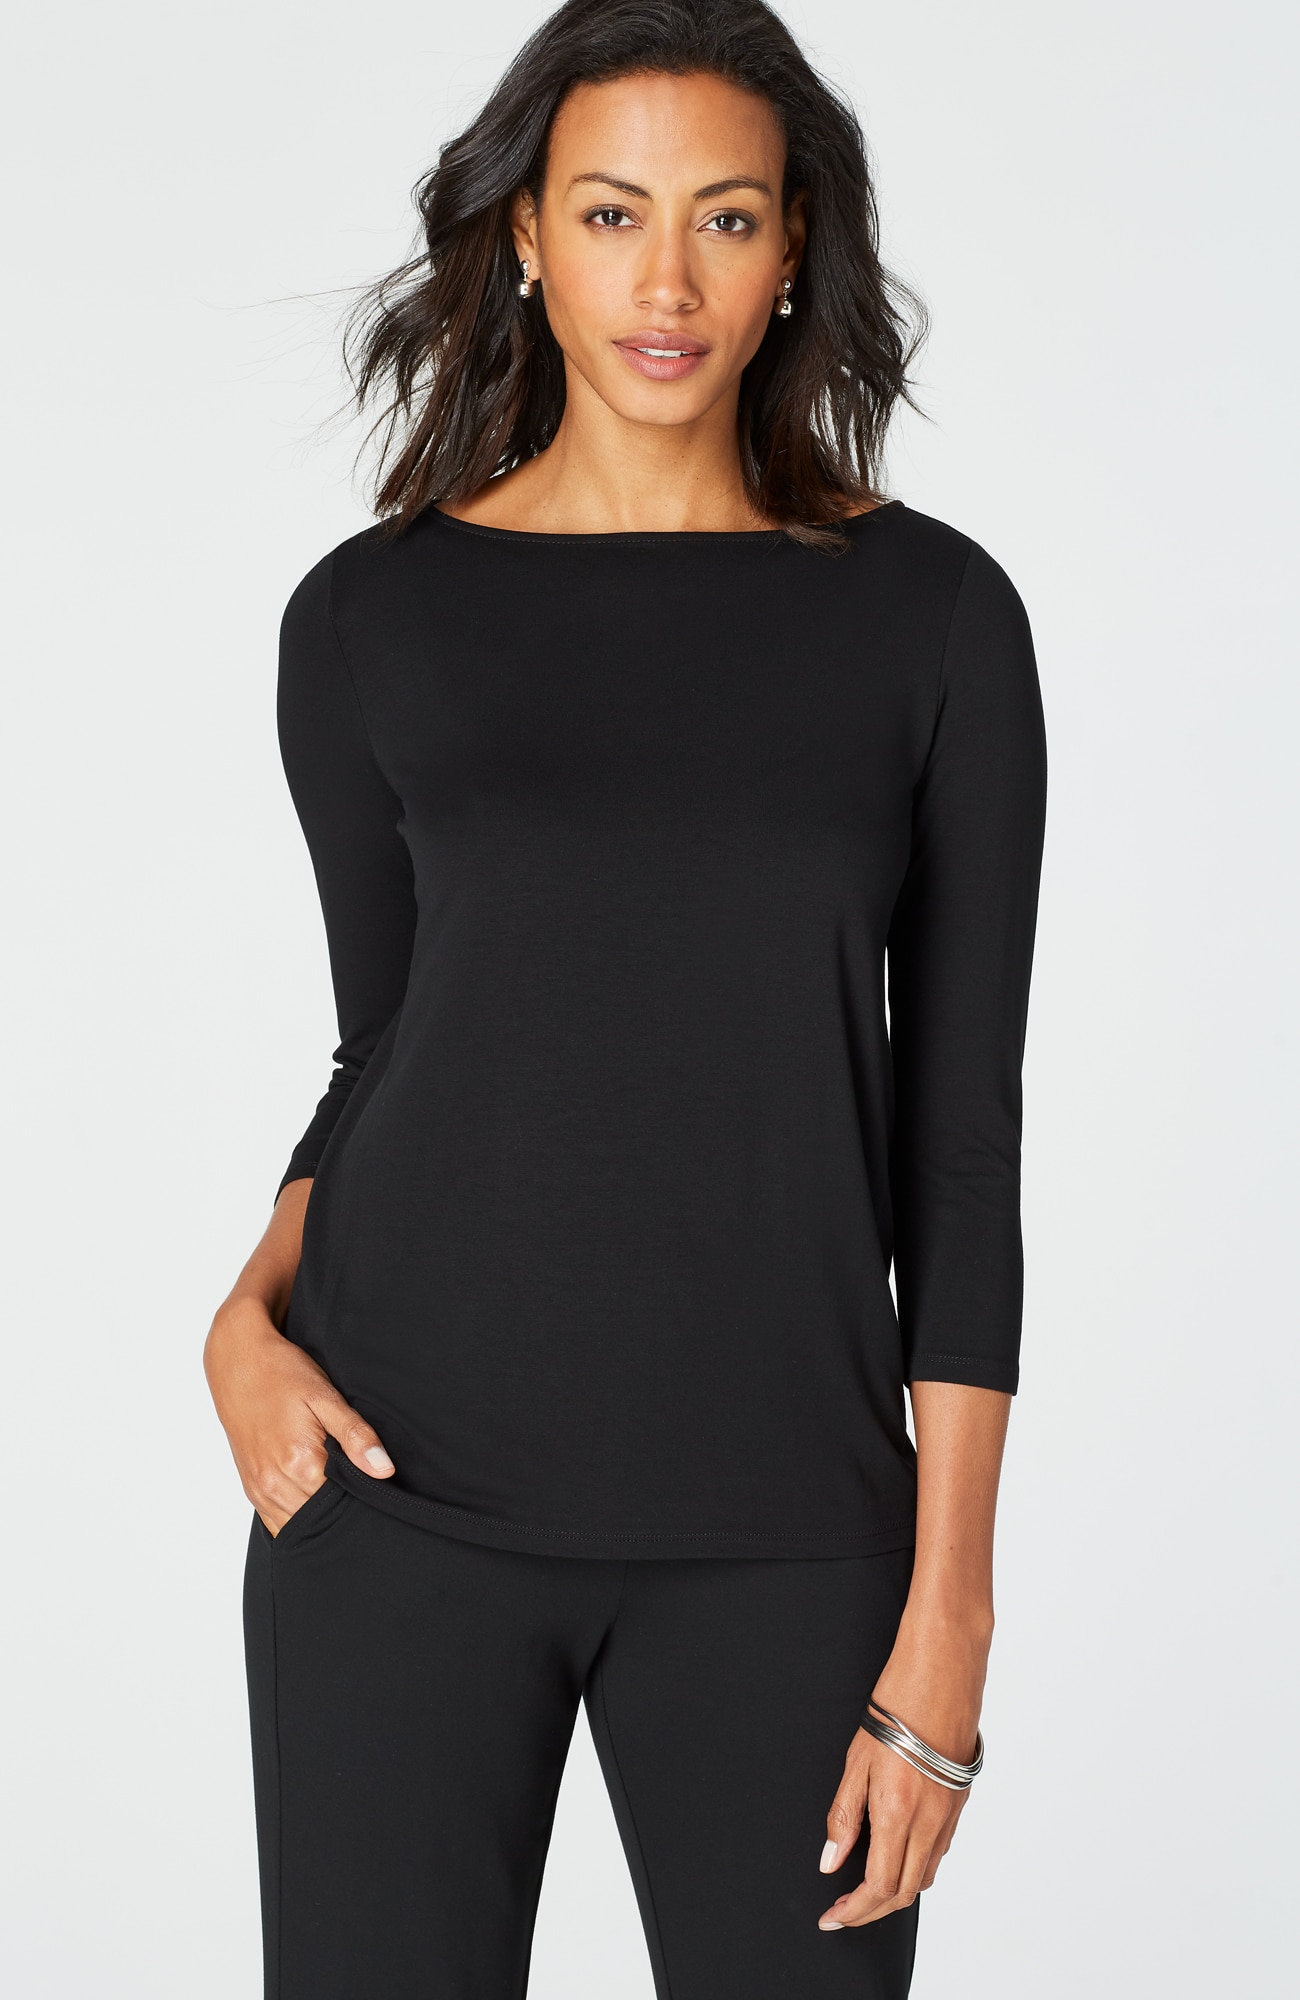 Wearever 3/4-sleeve easy top